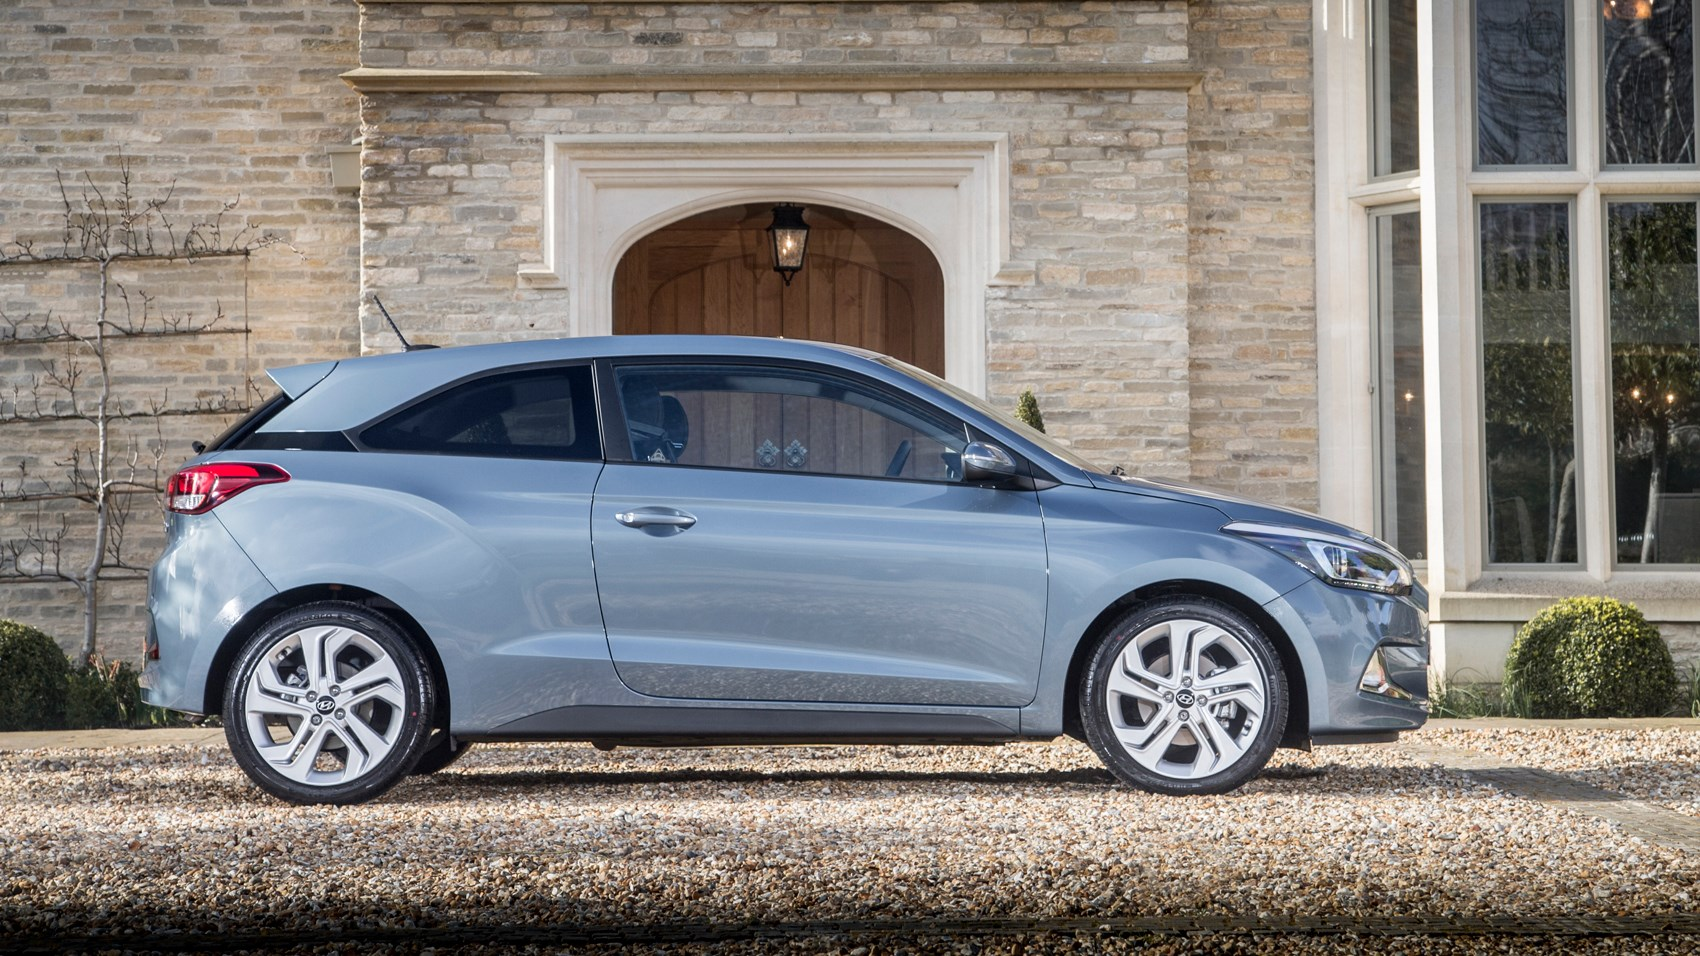 hyundai i20 coupe 1 0 t gdi 2016 review car magazine. Black Bedroom Furniture Sets. Home Design Ideas